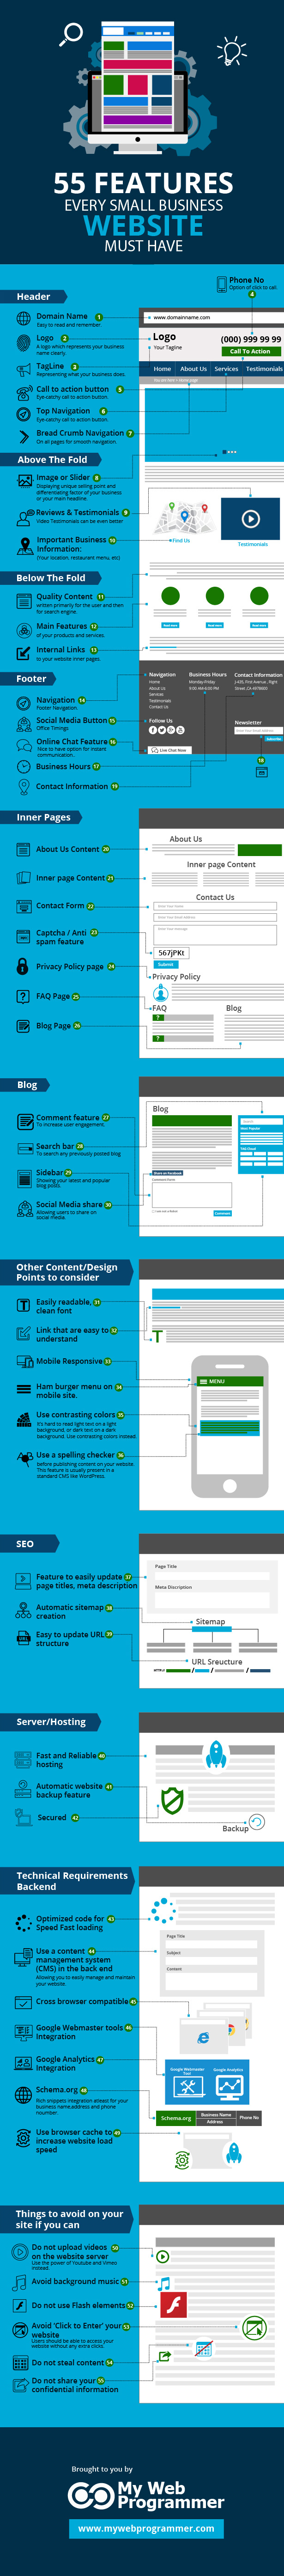 All The Small Business Websites Must Have These Features - Infographic